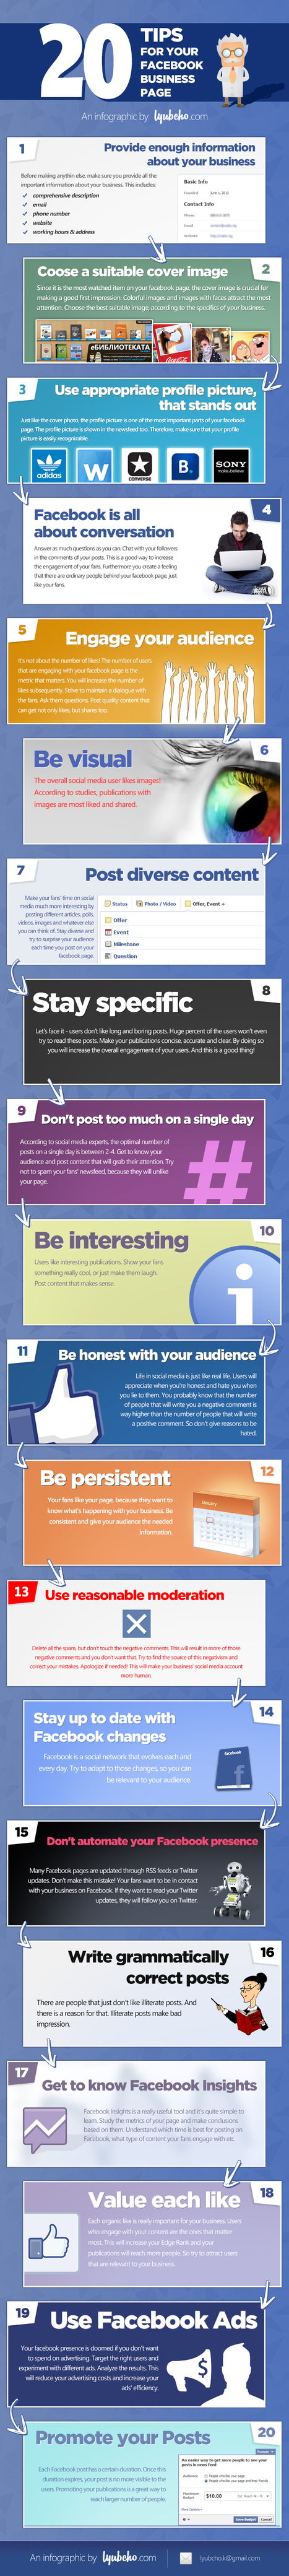 Infographic: 20 Tips for your Facebook Business Page | Market to real people | Scoop.it